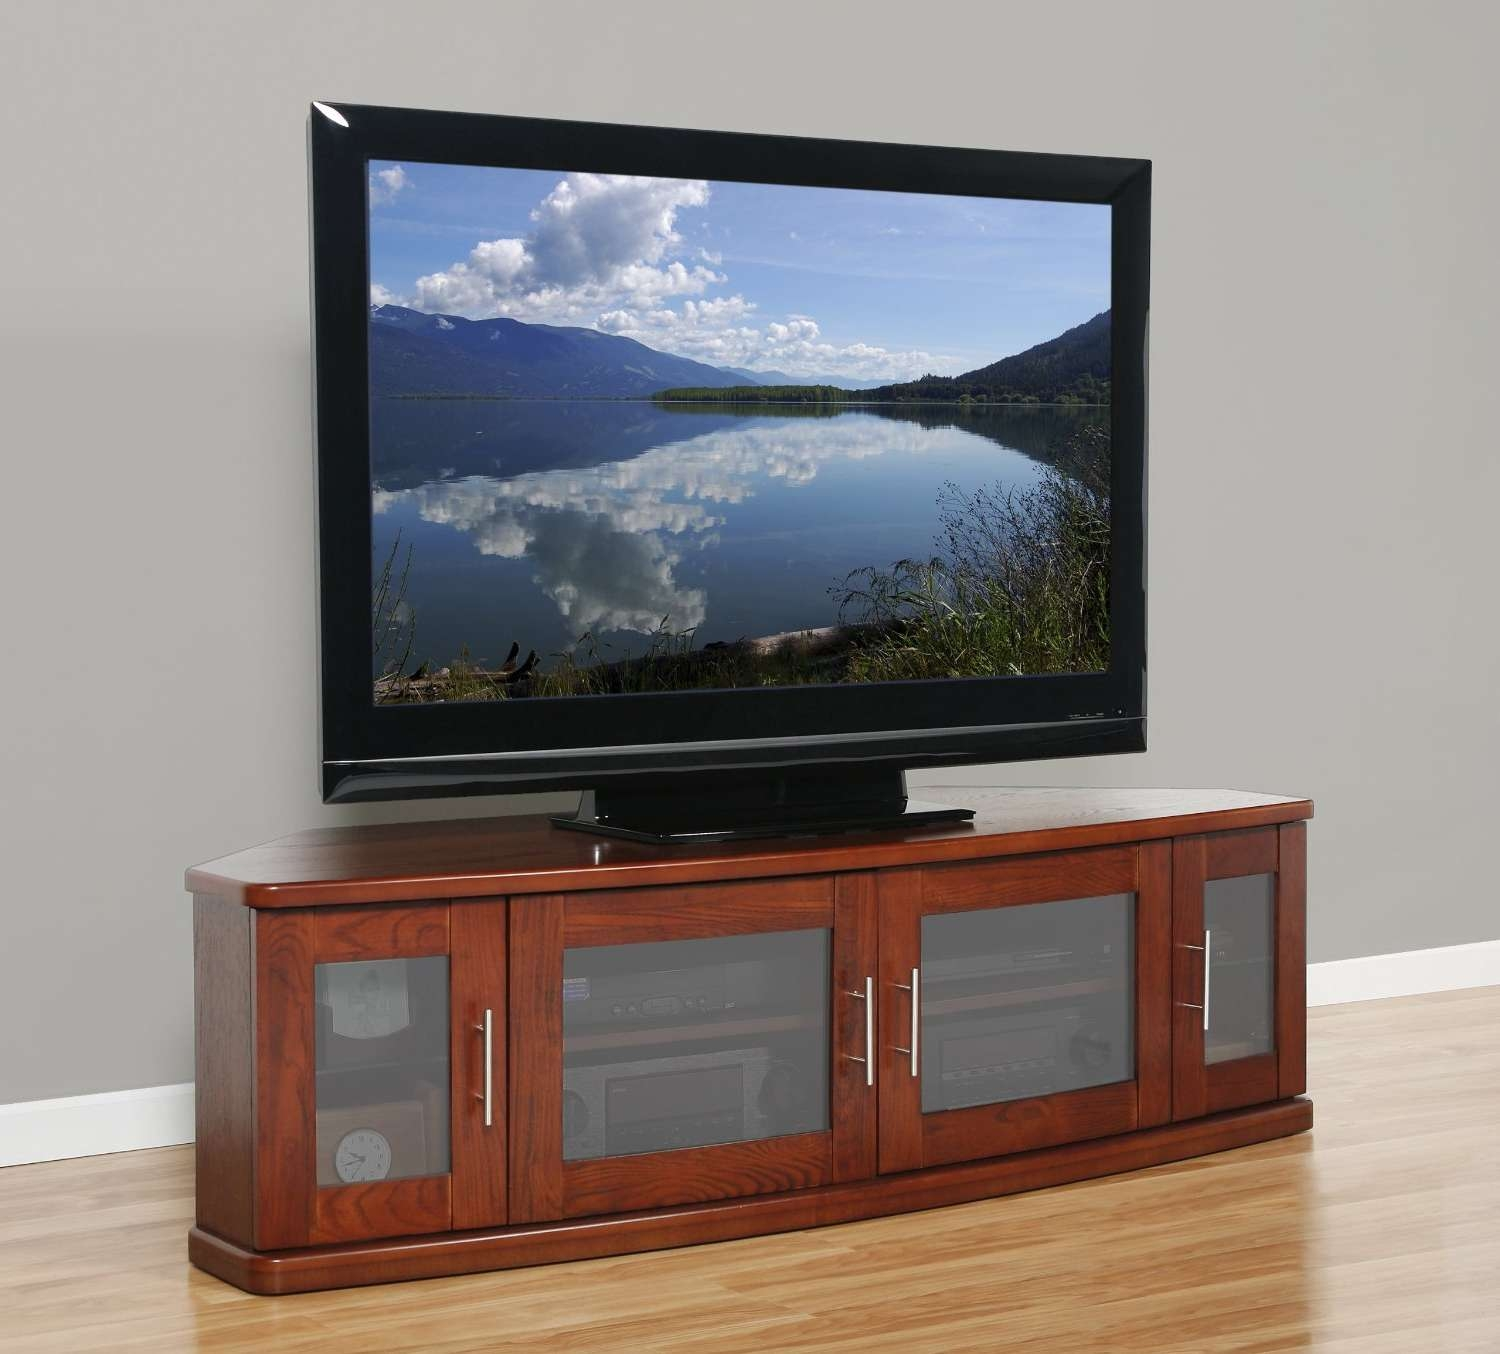 Curved Brown Figured Cherry Wood Low Cabinet For Tv Stand With 4 In Wood Tv Stands With Glass (View 8 of 15)